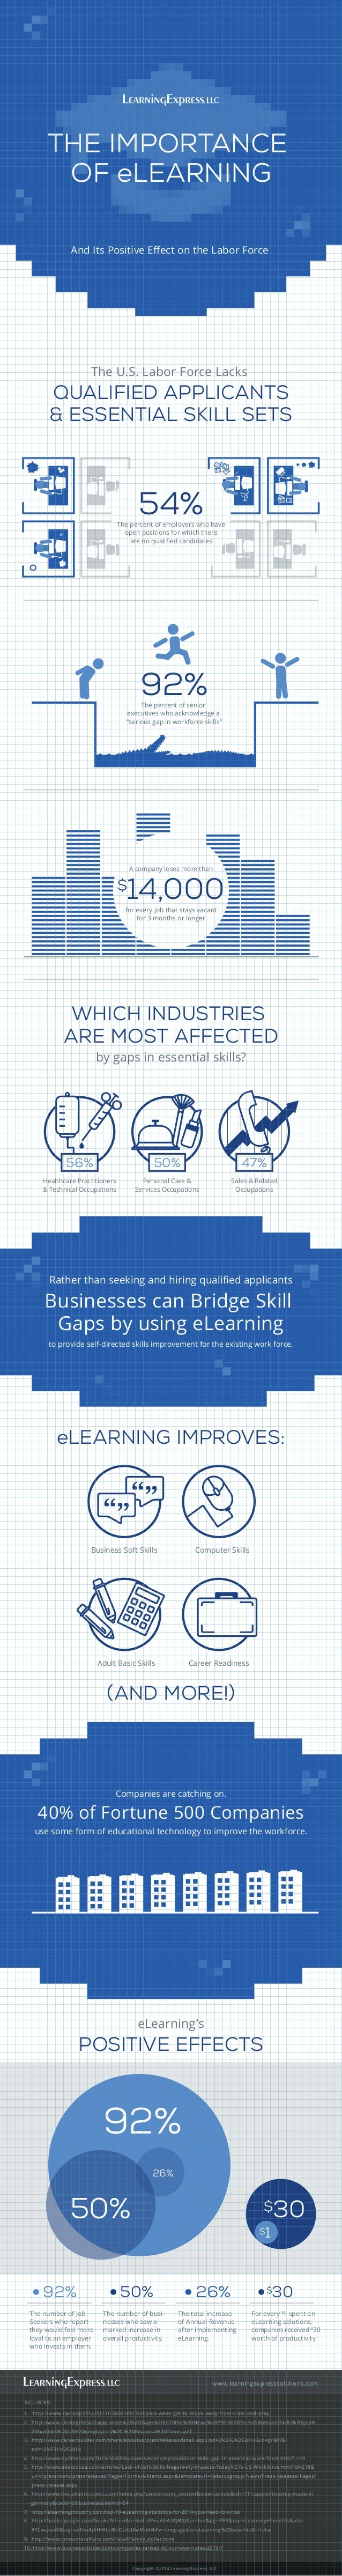 "56% 50% 47% The percent of senior executives who acknowledge a ""serious gap in workforce skills"" 92% THE IMPORTANCE OF eLE..."